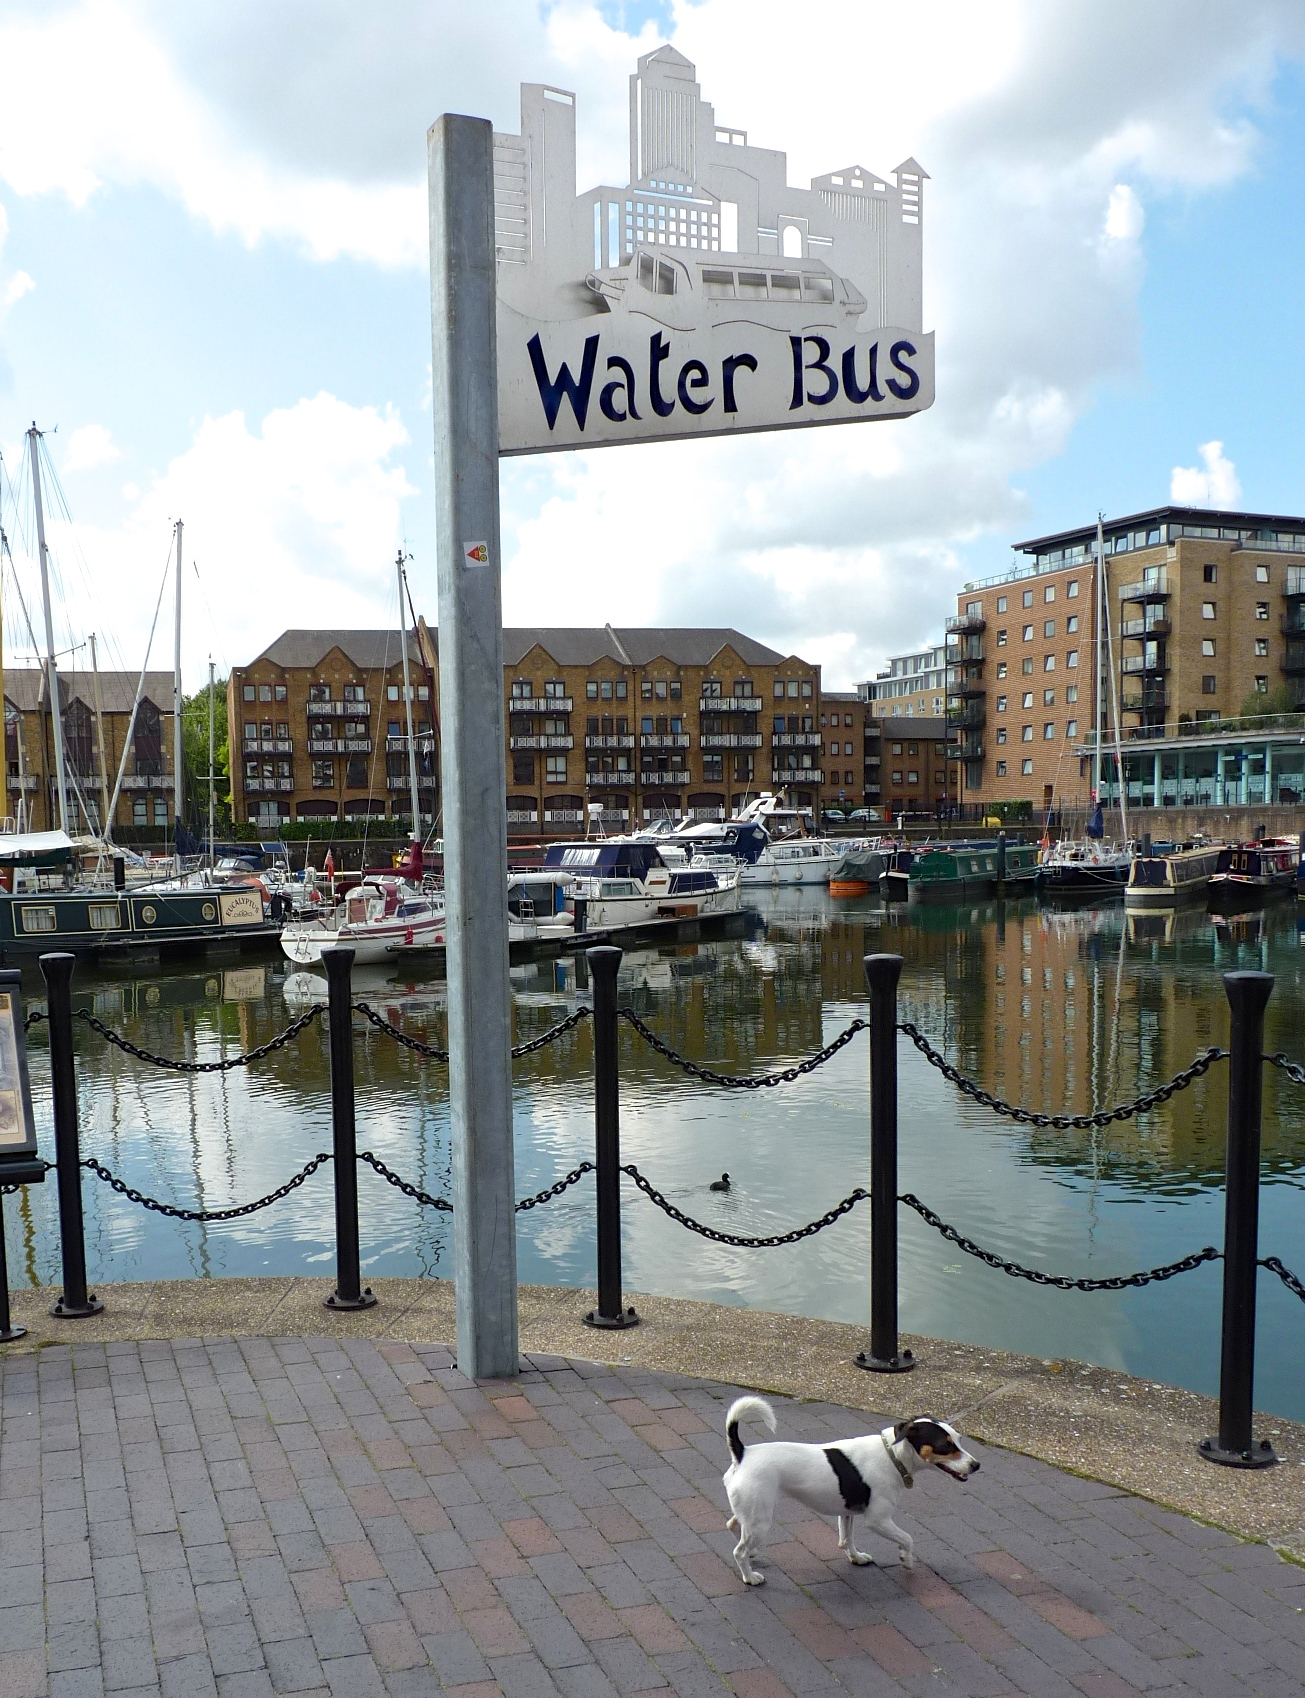 Now if you'll excuse me, I have a bus to catch-- a water bus!